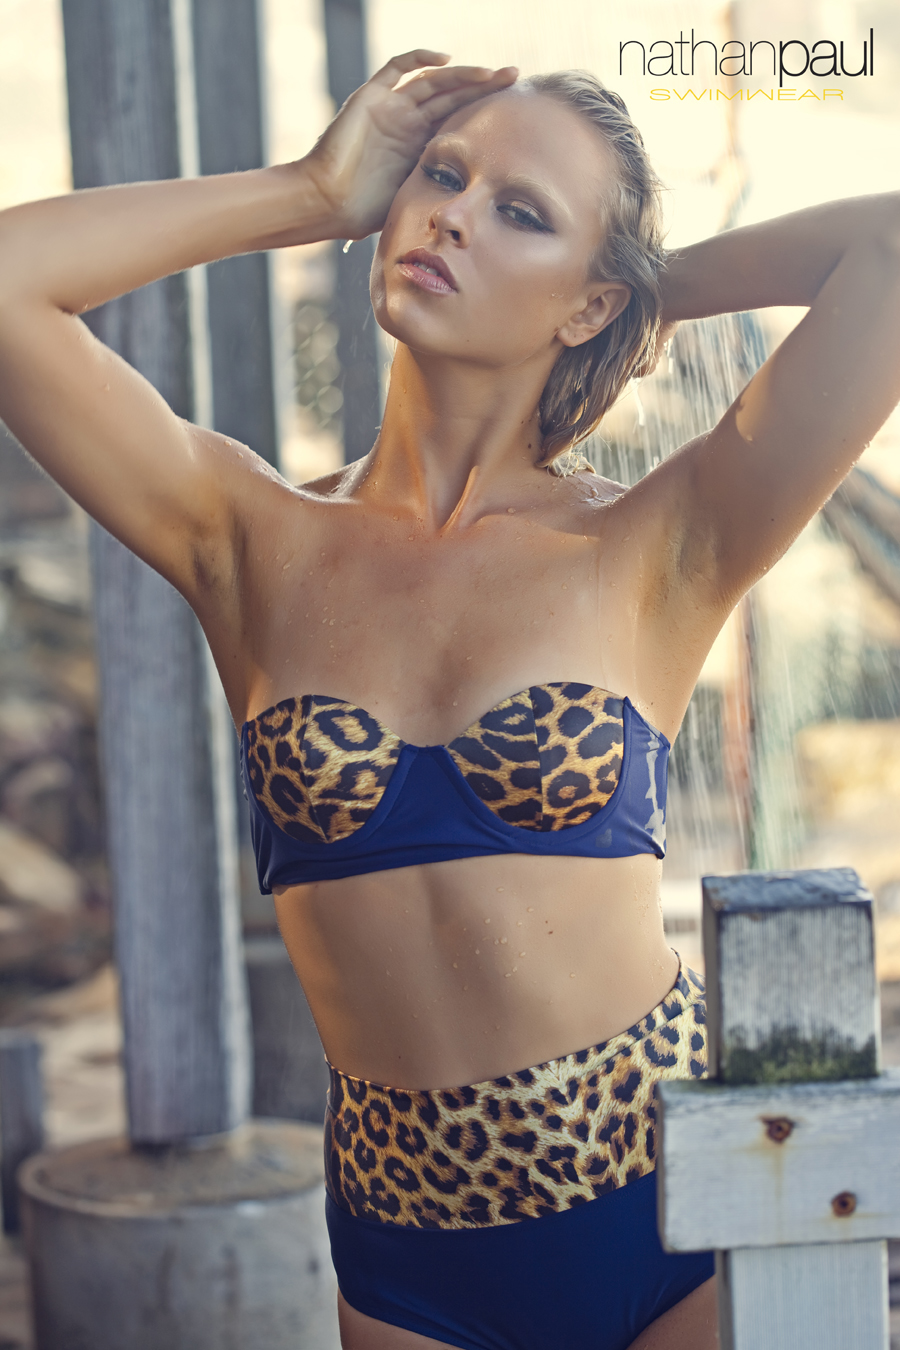 LEOPARD PRINT AND NAVY STRAPLESS BIKINI